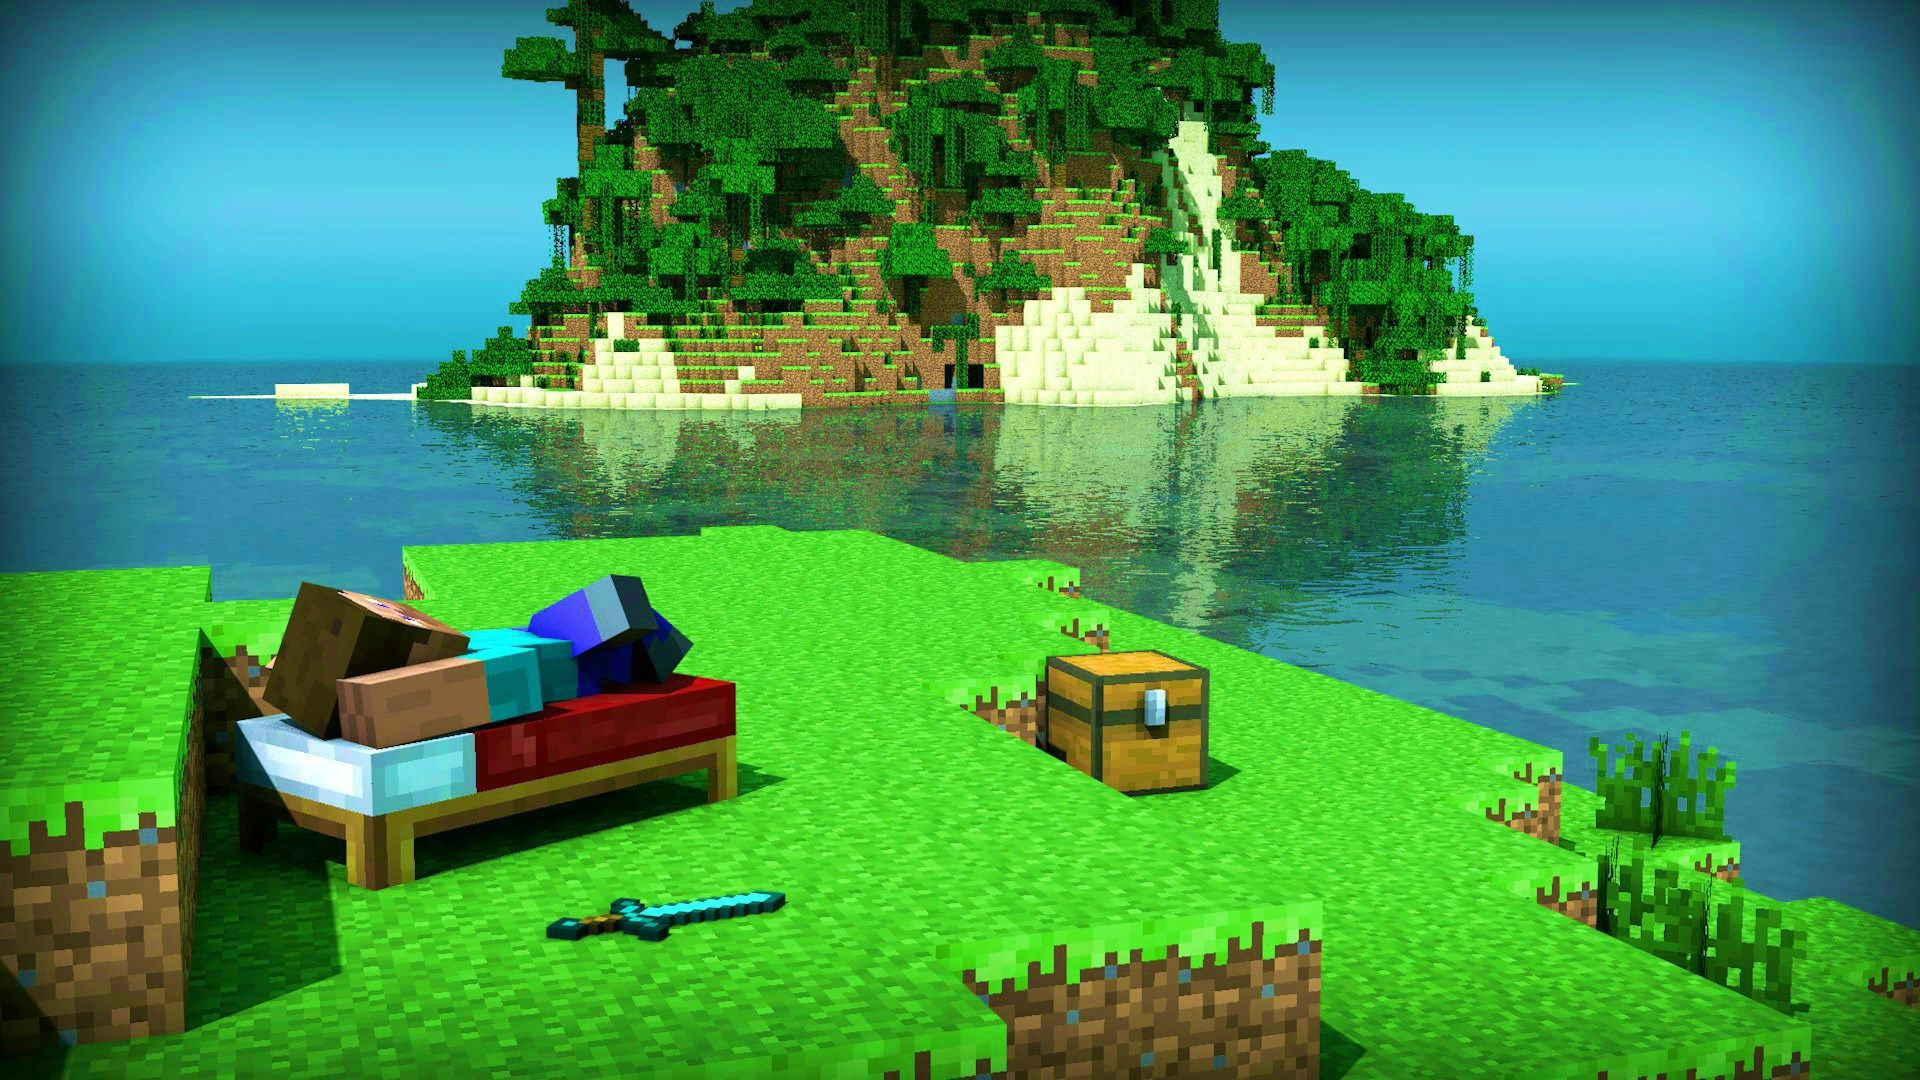 Marvelous Design Ideas Minecraft Backgrounds 1920x1080